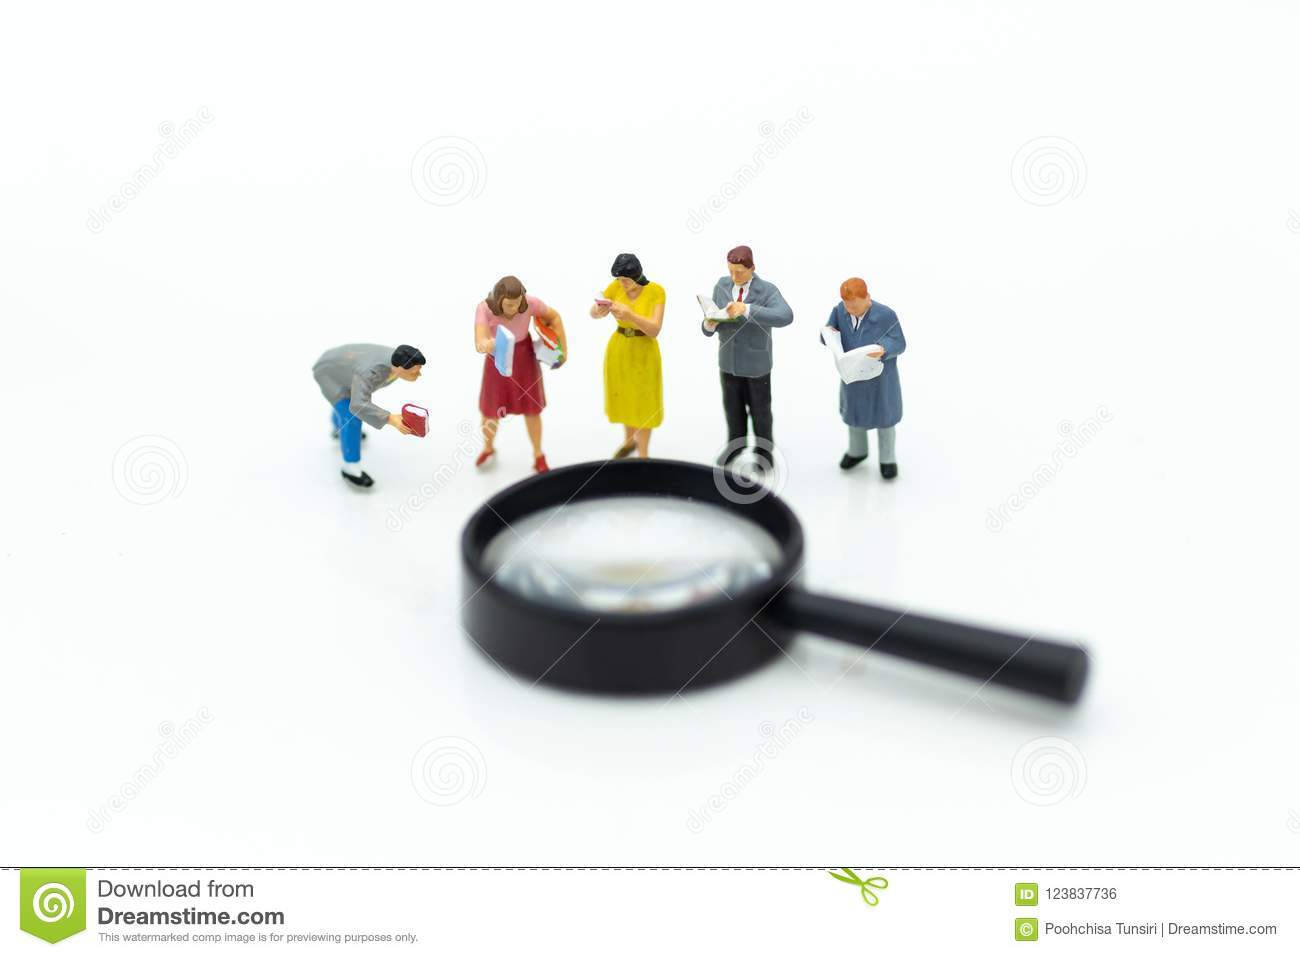 Miniature people: Students read books with magnifying glass . Image use for education concept